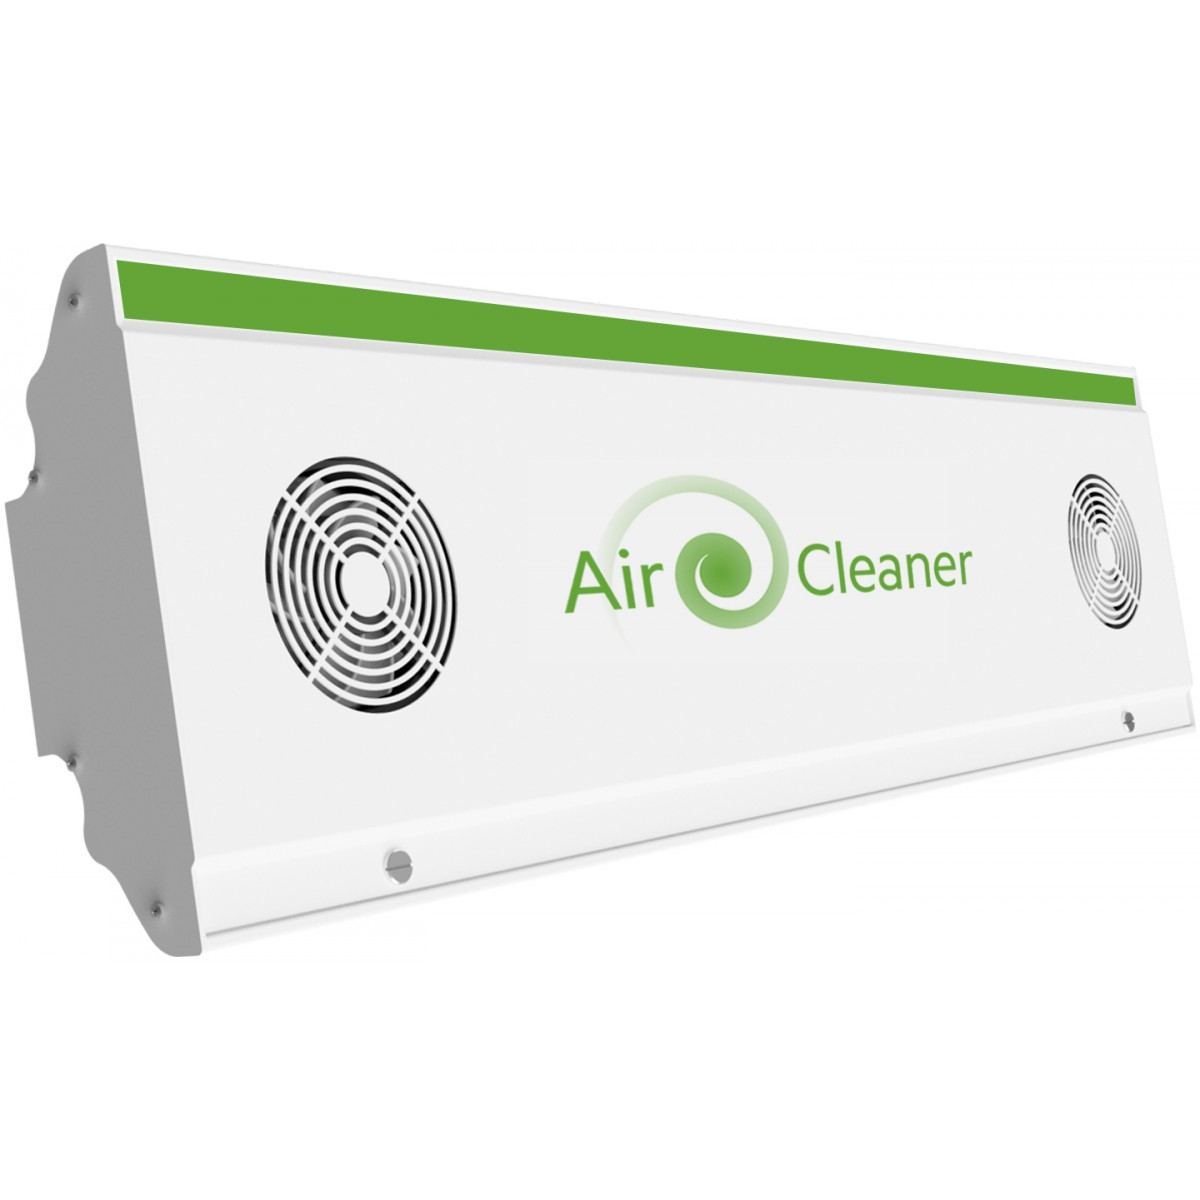 Air Cleaner profiSteril 100